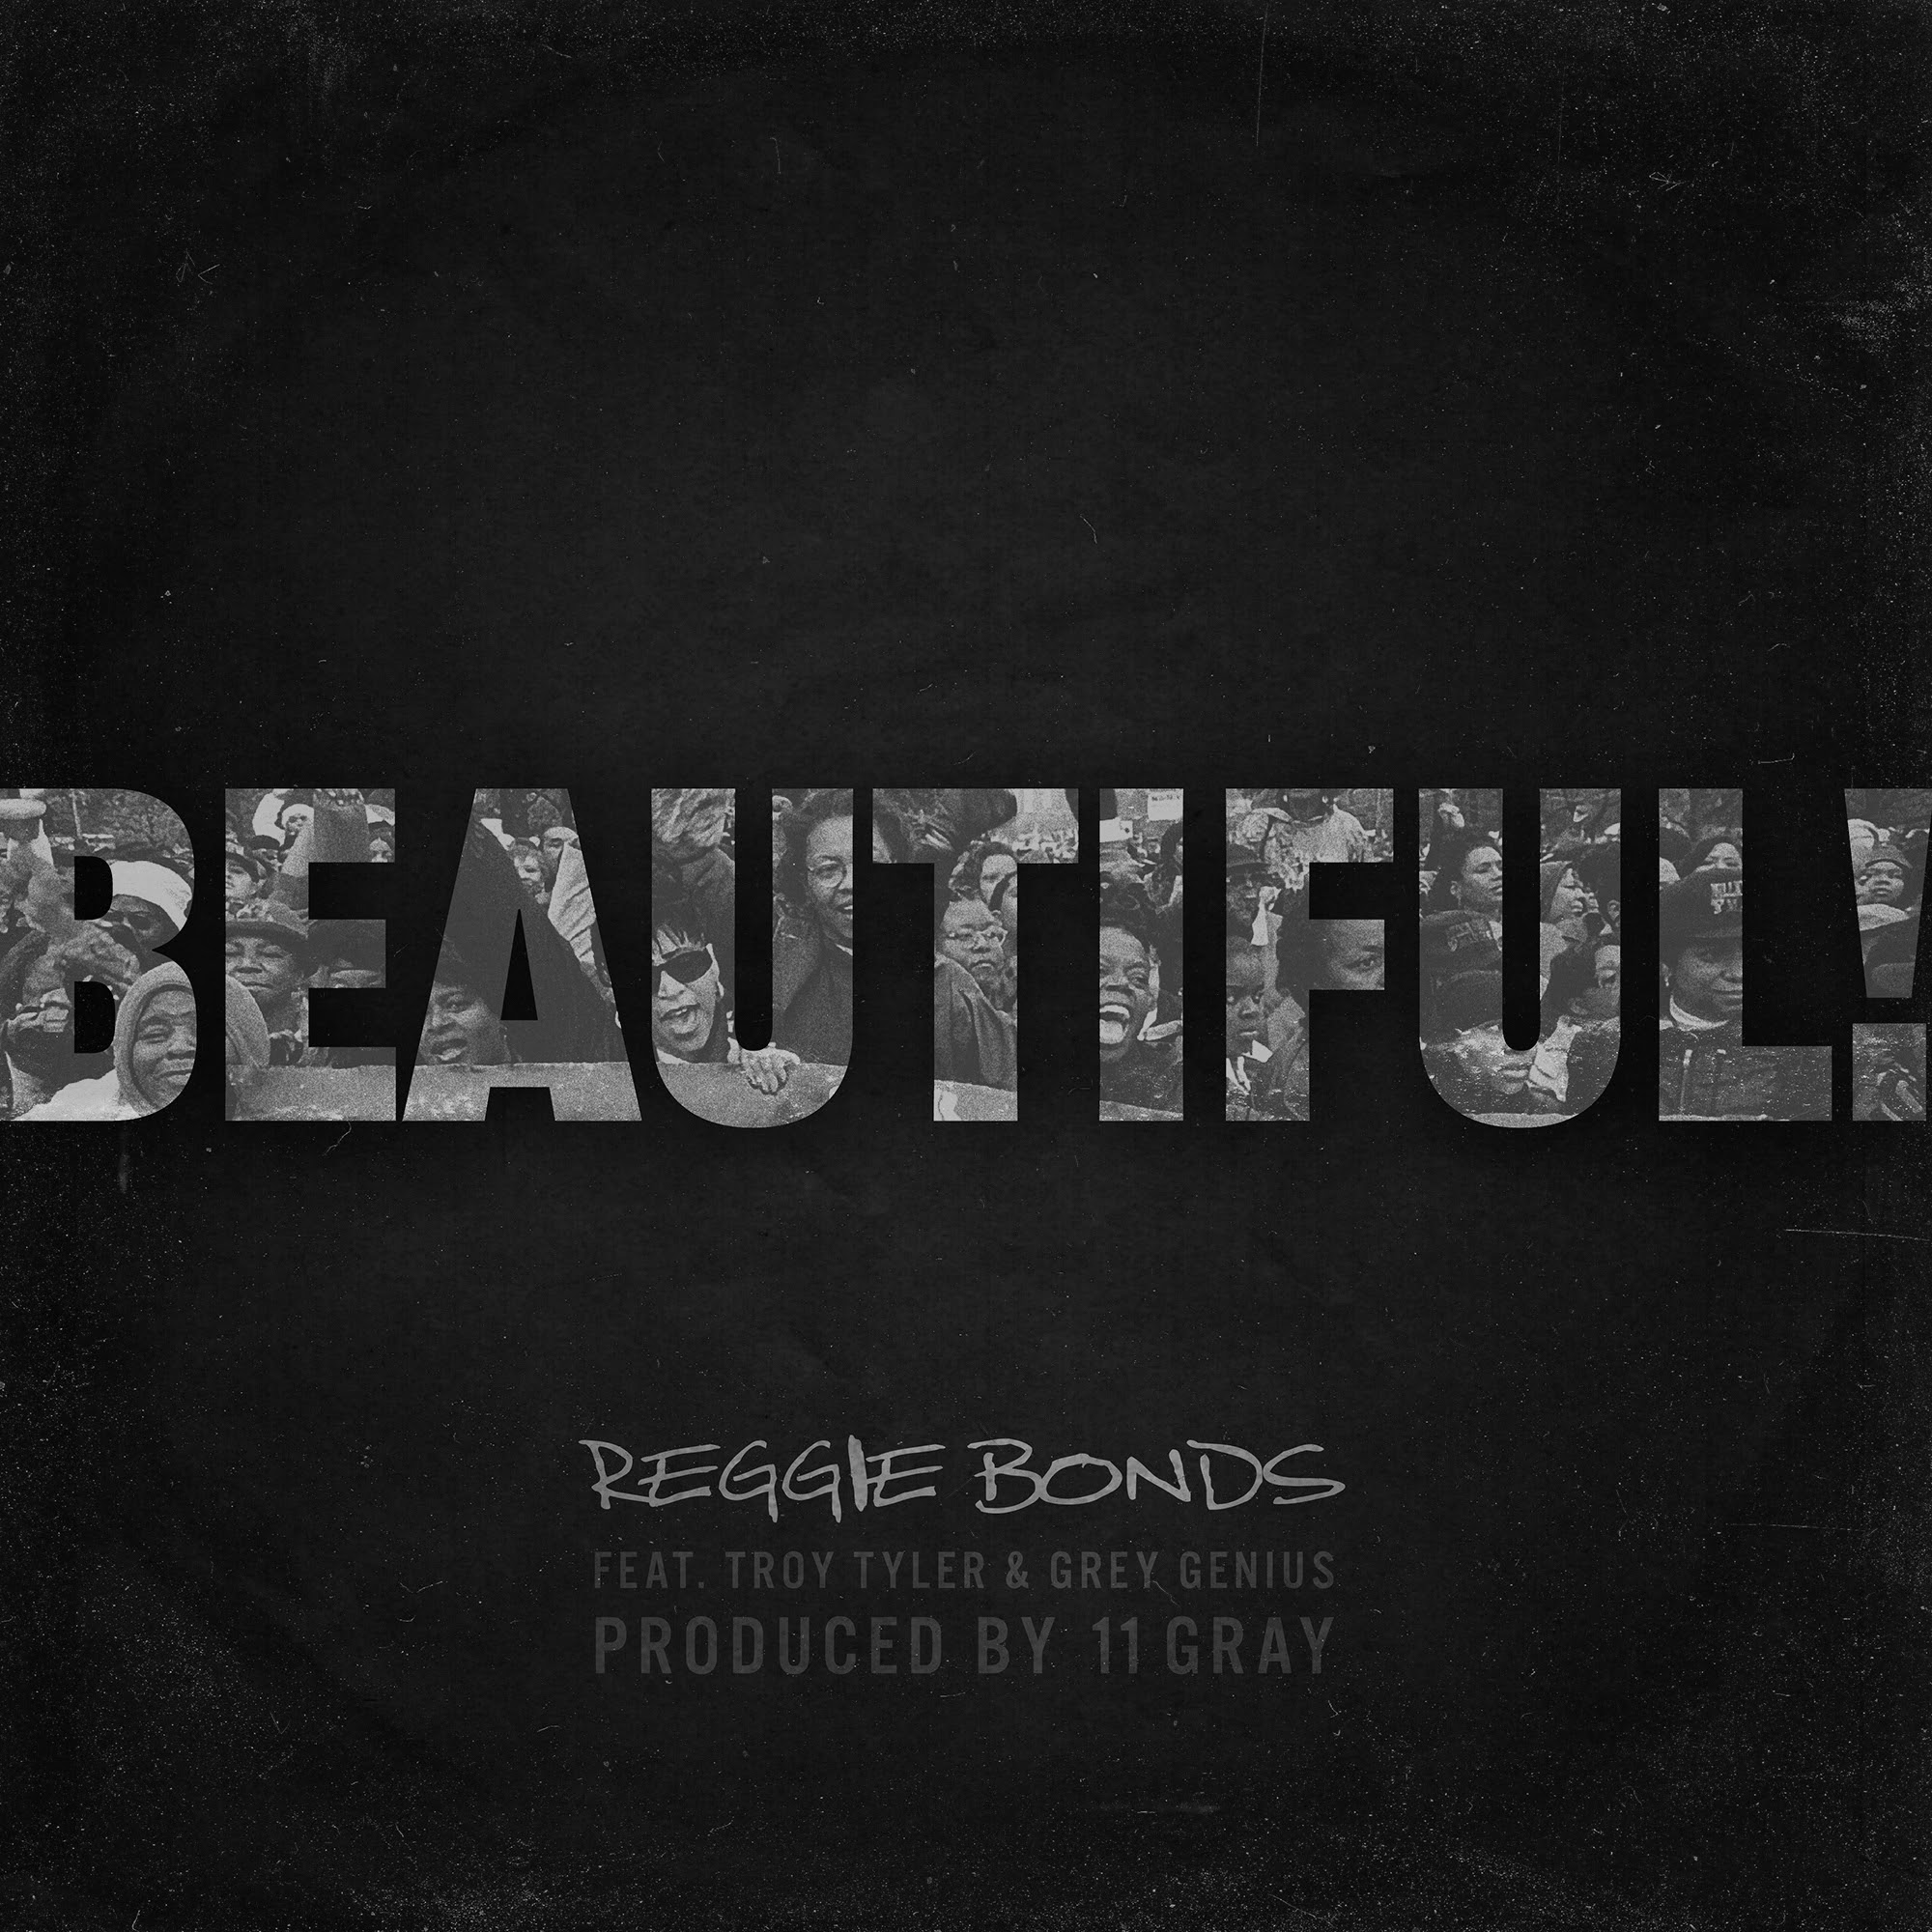 Stream BEAUTIFUL Reggie Bonds Ft. Troy Tyler, Grey Genius